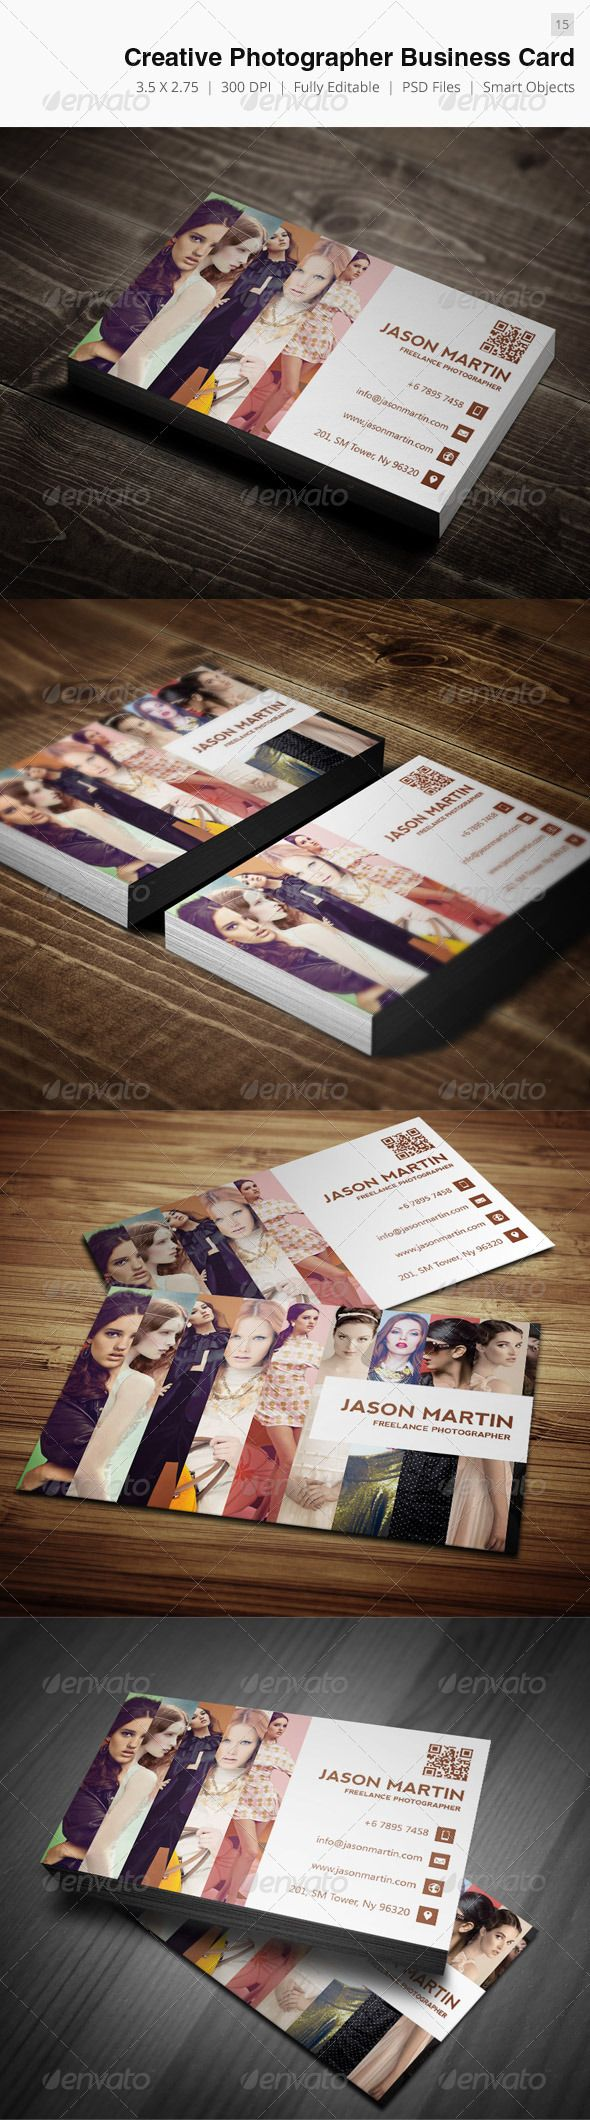 Creative Photographer Business Card - 15 - Creative Business Cards